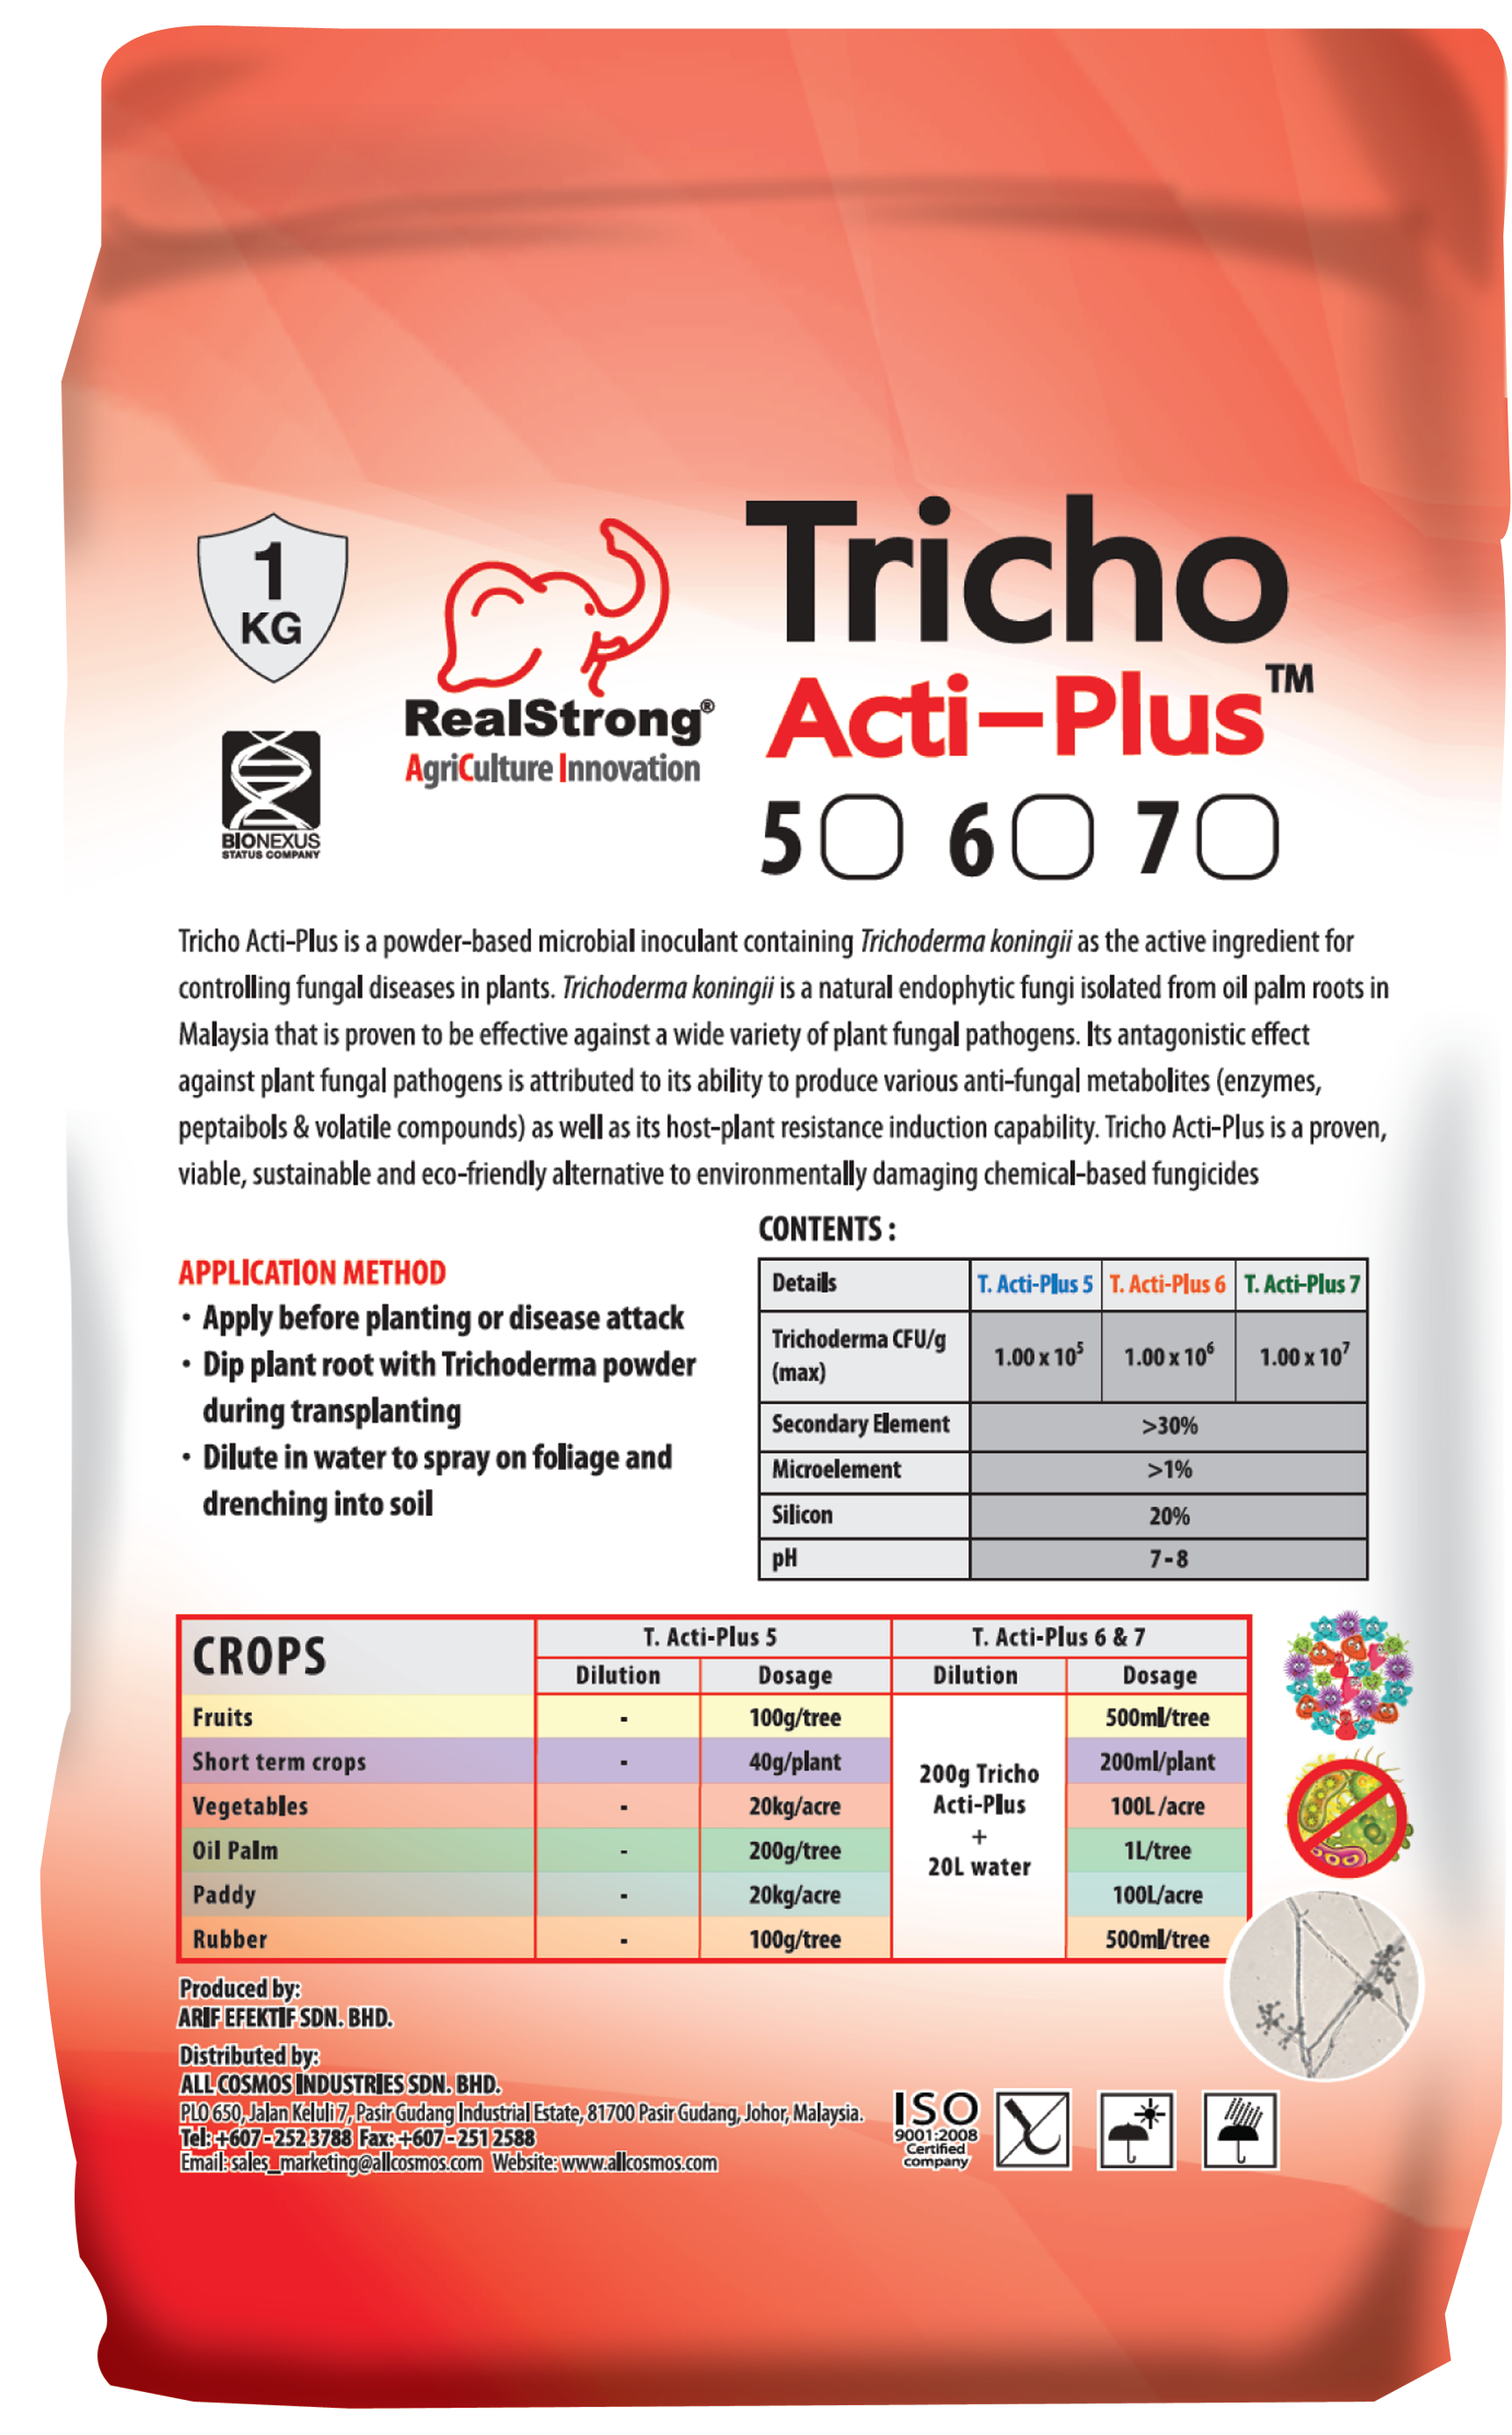 TRICHO ACTI-PLUS